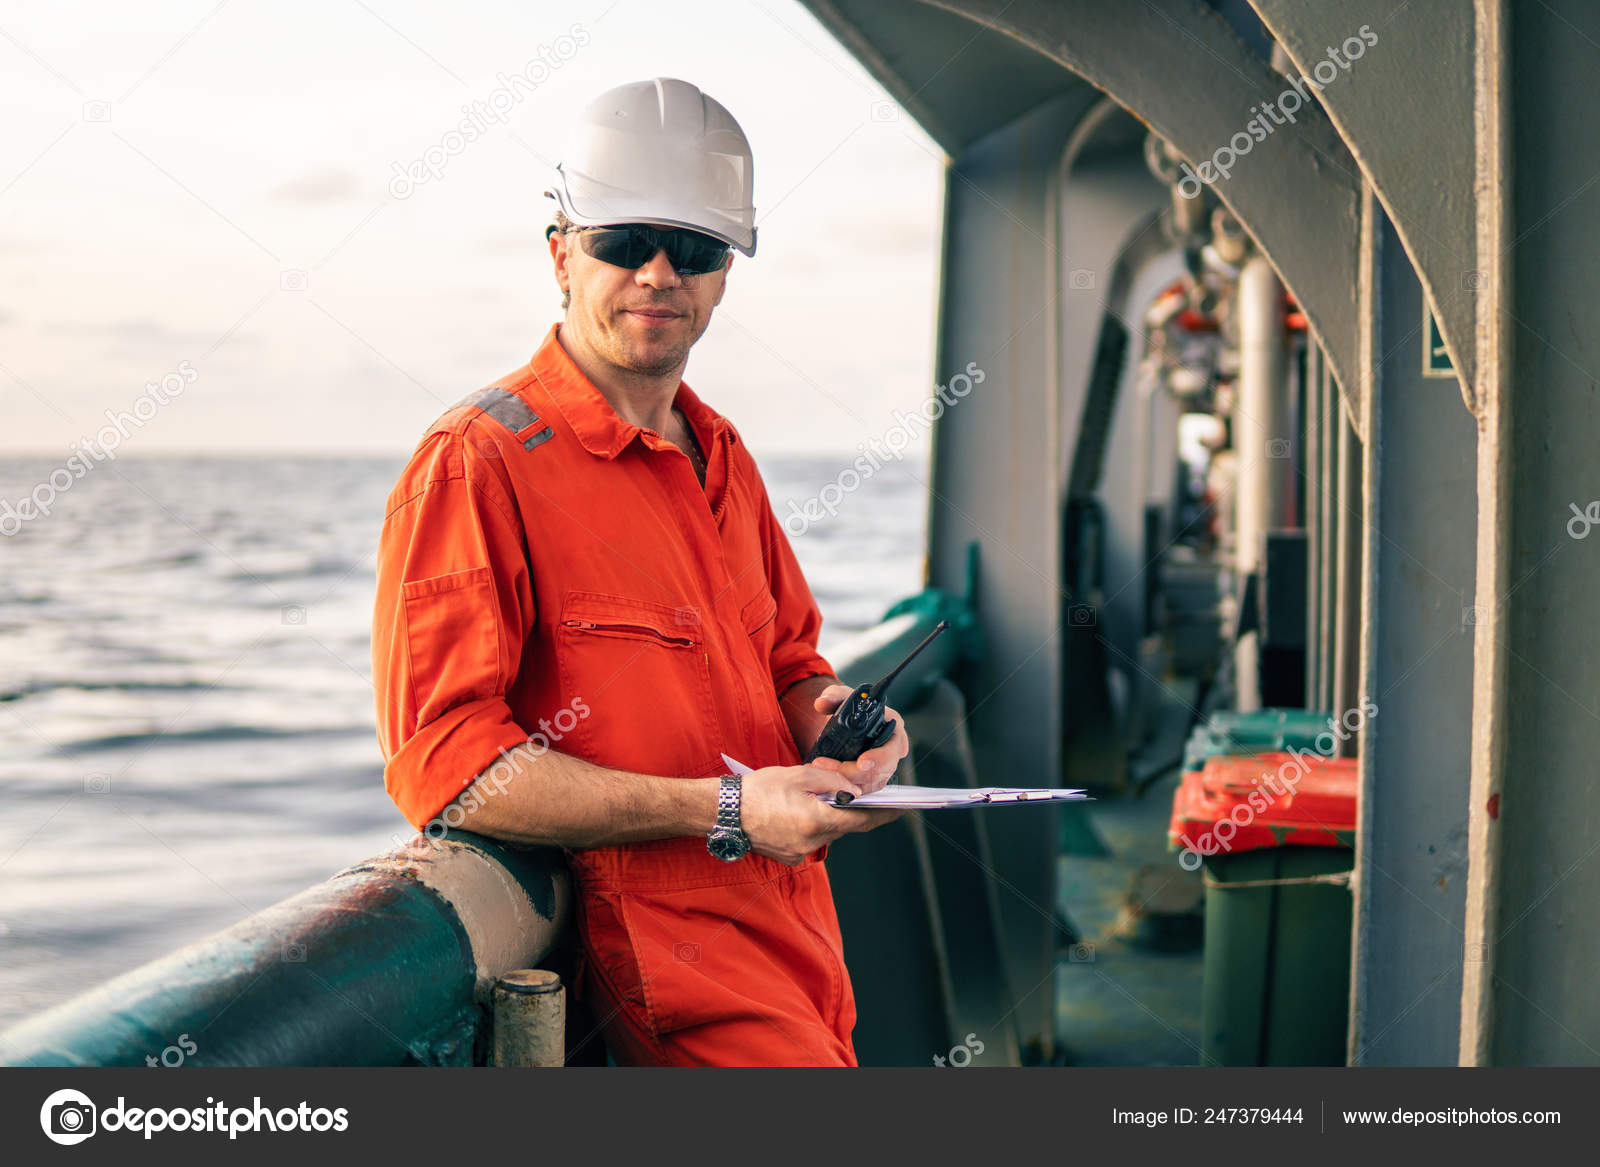 Deck Officer on deck of offshore vessel holds VHF walkie-talkie